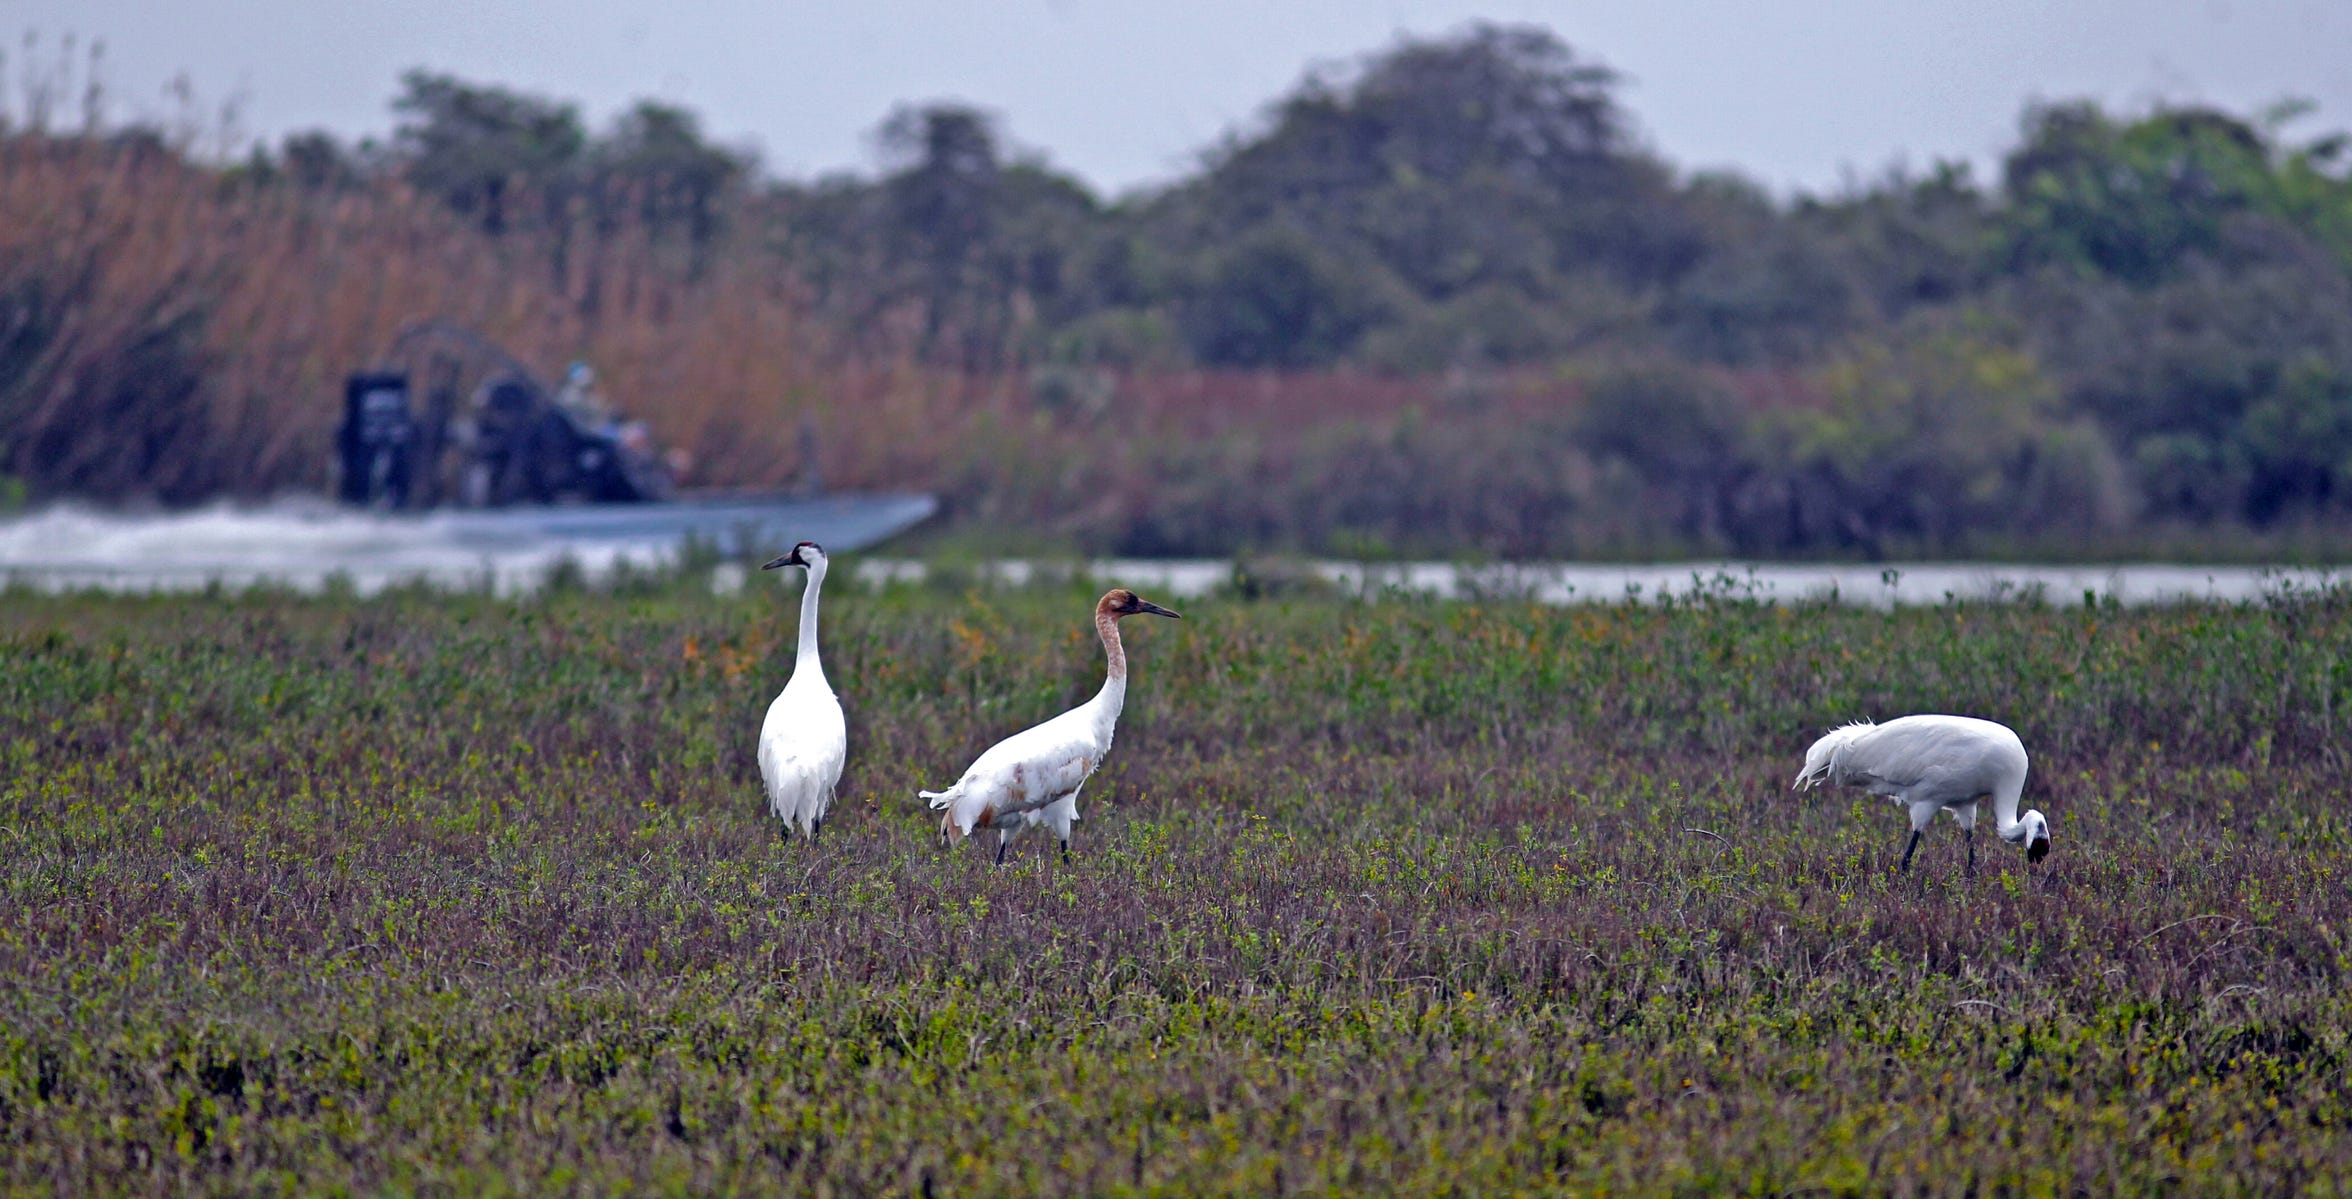 Most of the whooping crane's winter habitat is healthy as the only wild flock wings its way to Texas.